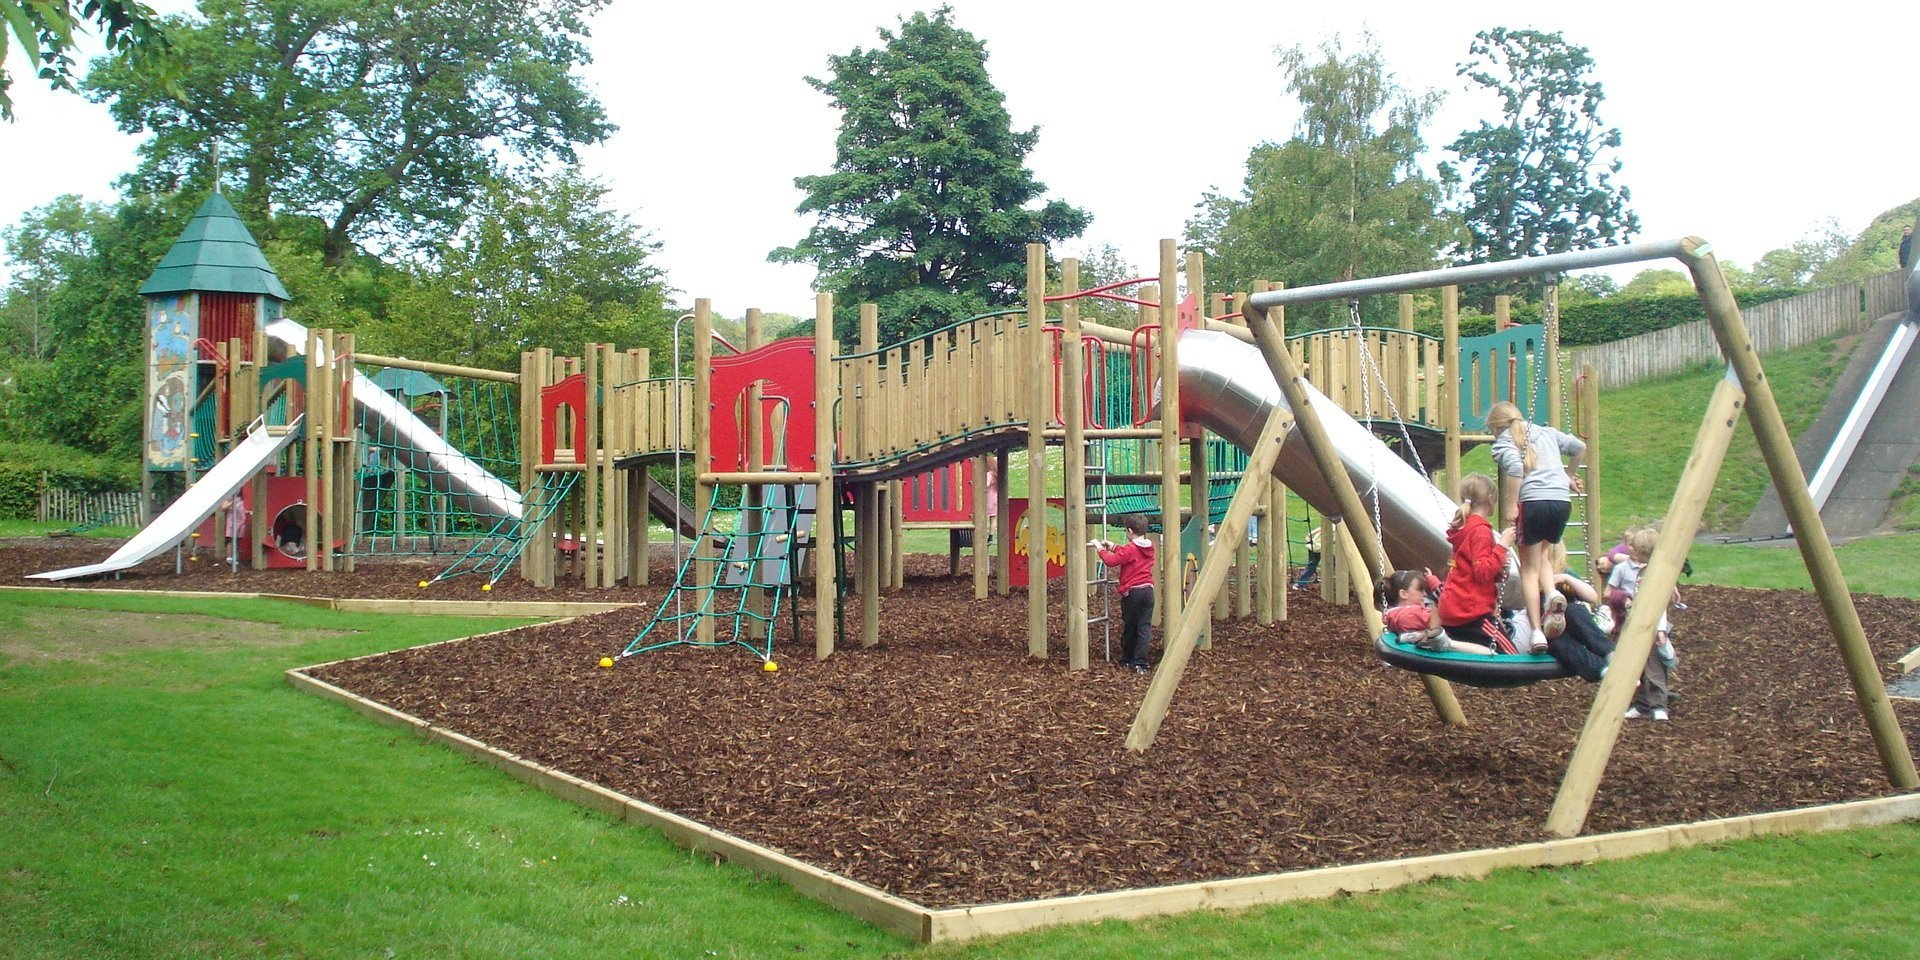 Play area with swings, slides and climbing frames